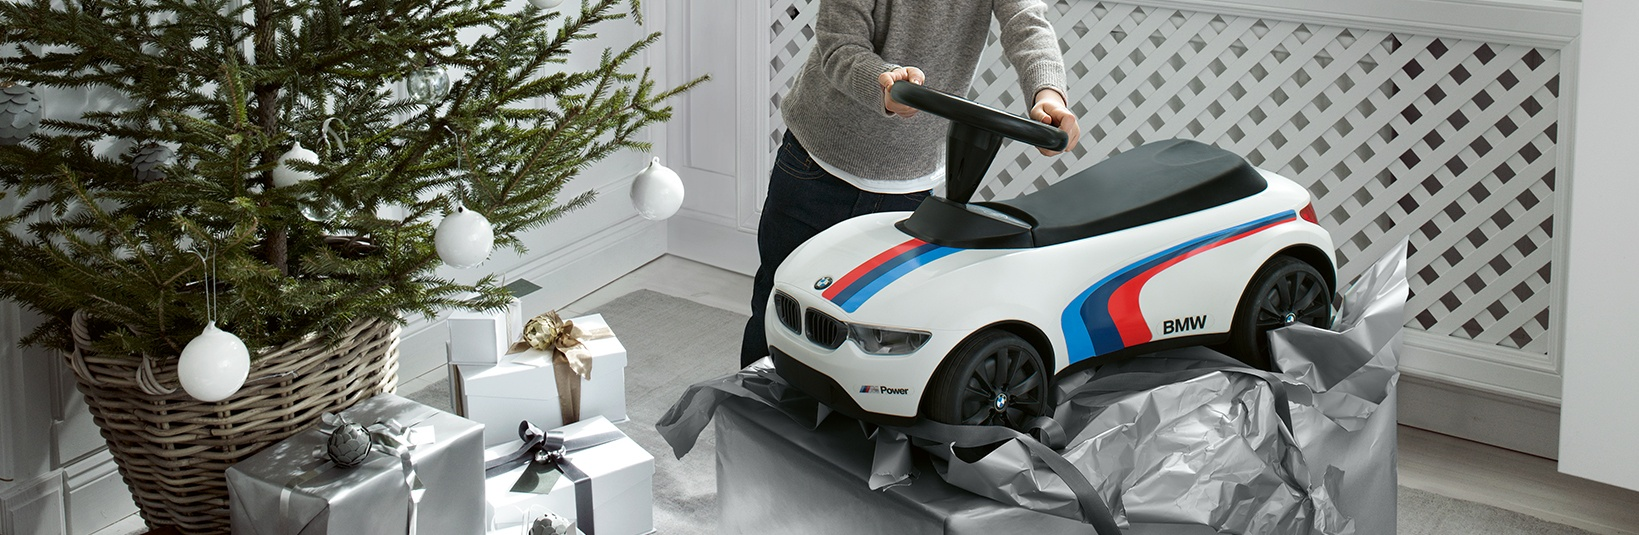 2018 BMW Grand River Holiday Gift Guide